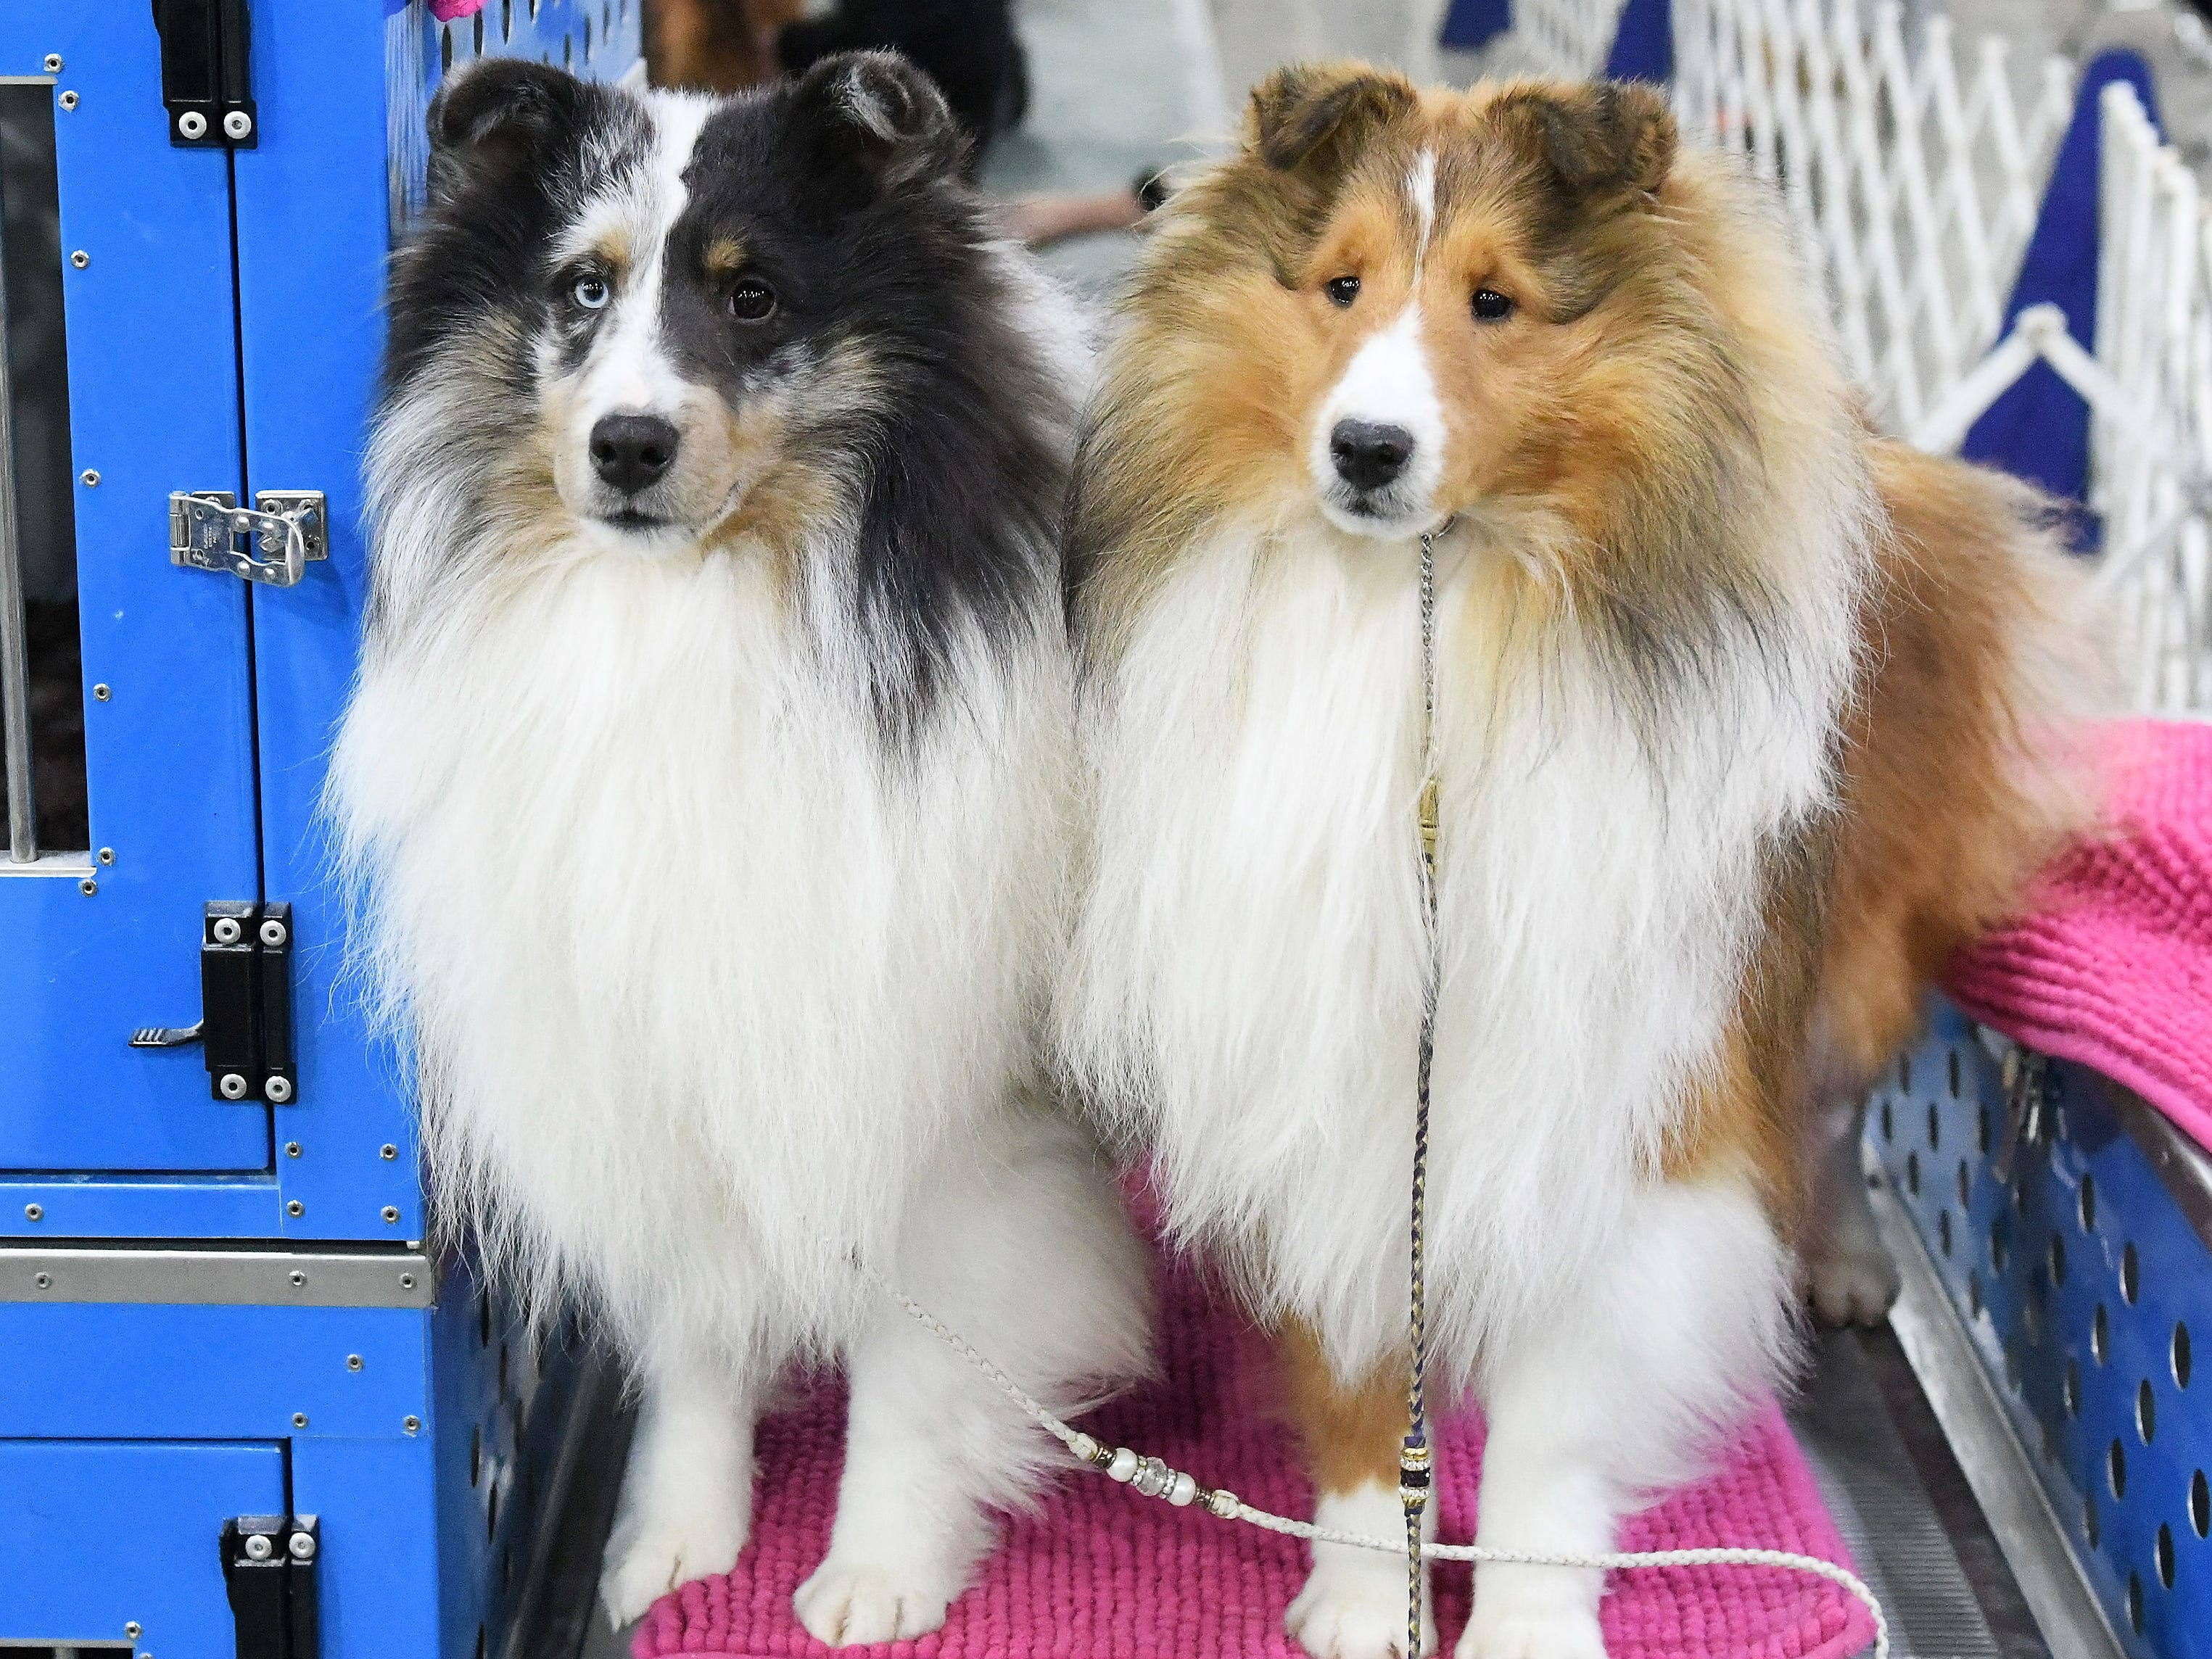 Blake, a sable and white sheltie, right, poses for a photo with Levi, a blue merle sheltie, pose for a photo.